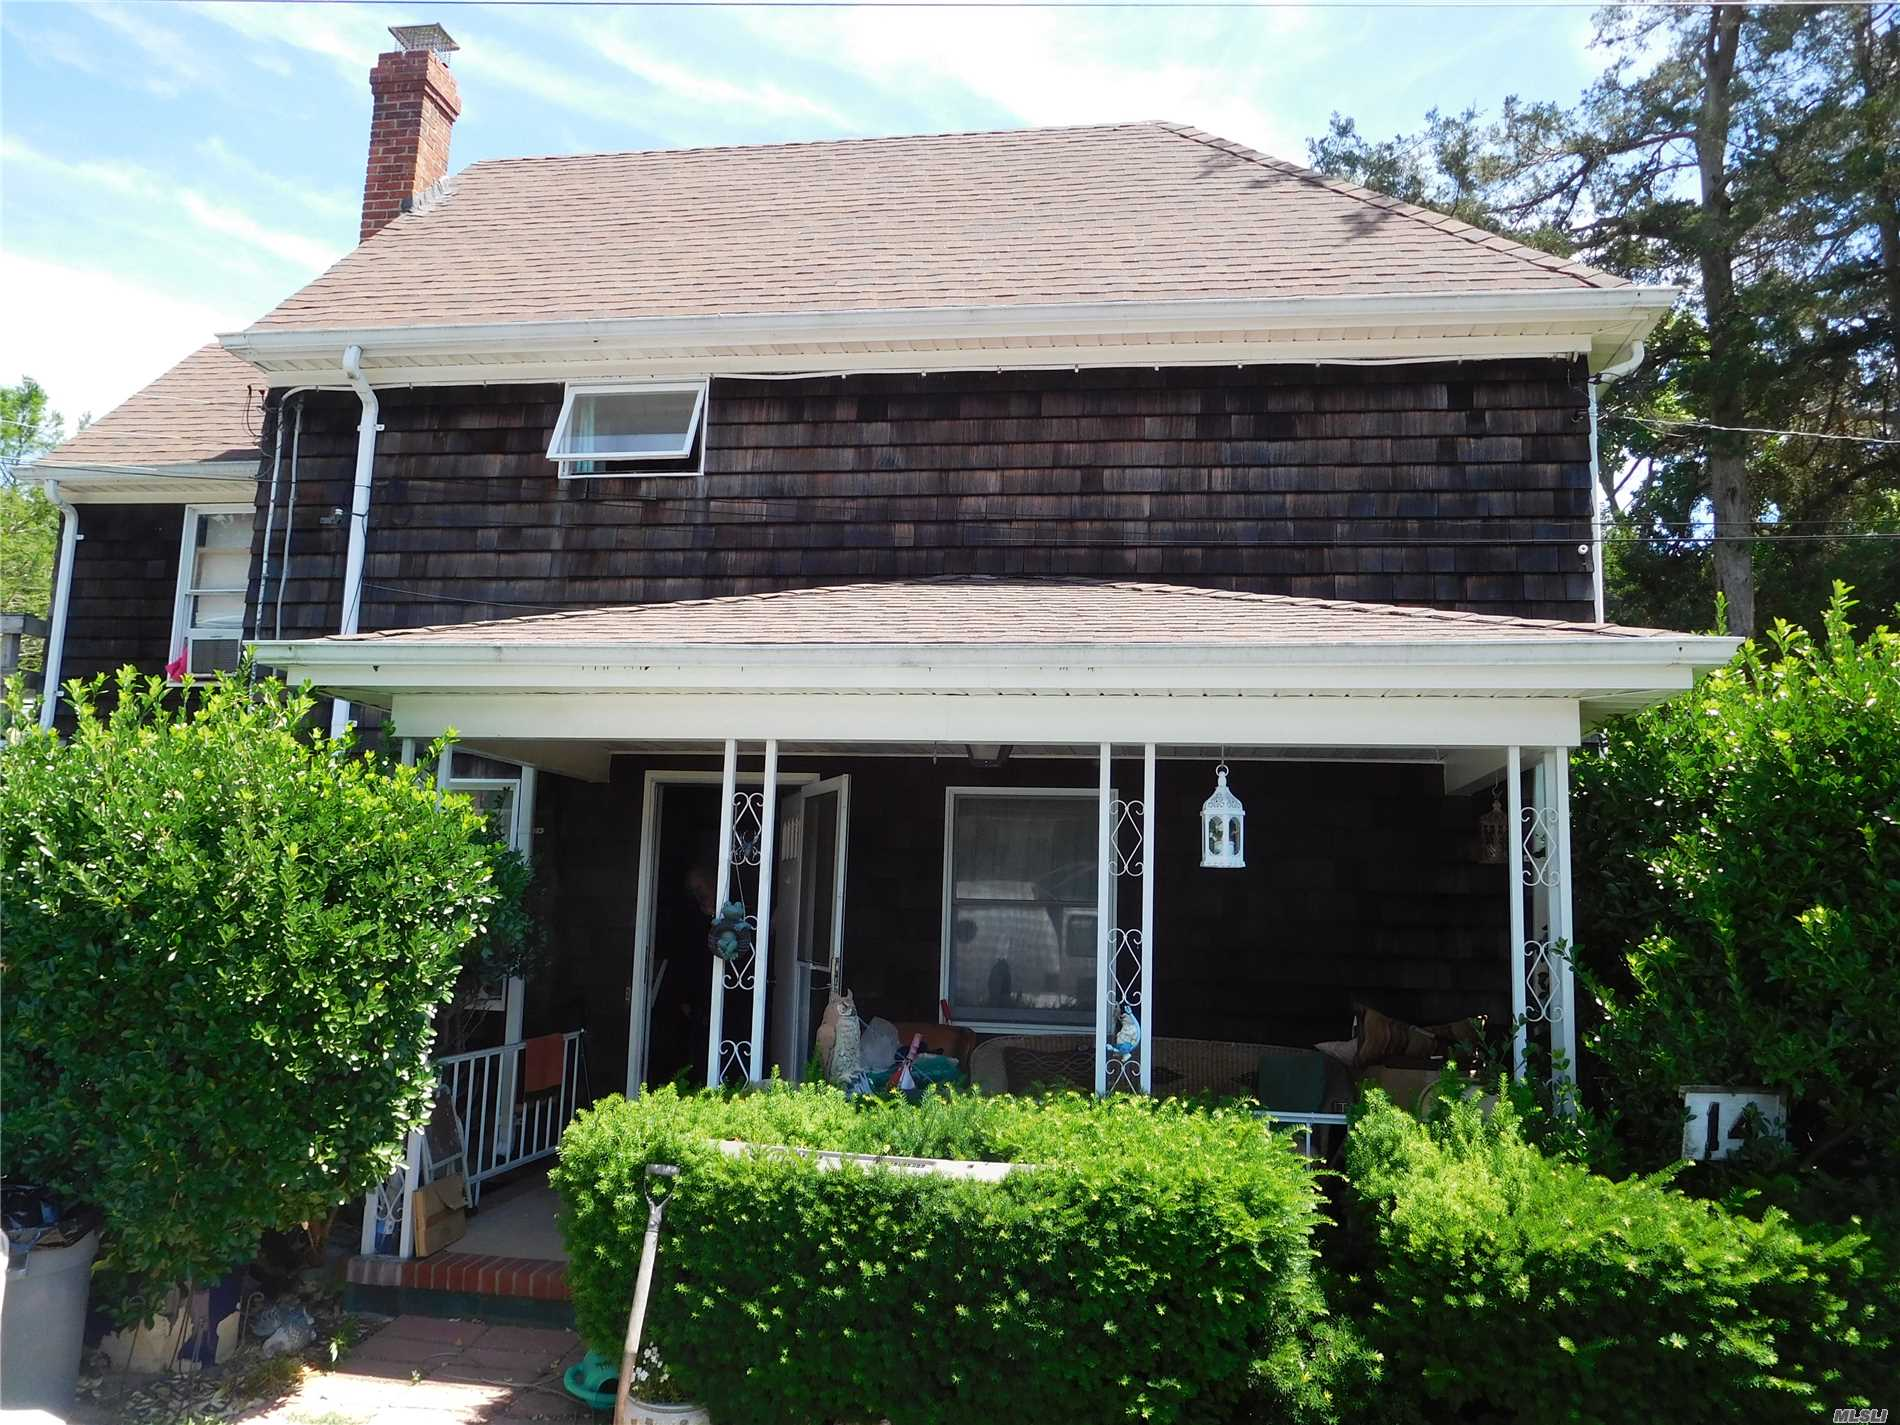 1922 Cedar Shake 2 Story. 2 Bedrooms, 1.5 Baths, Lr/Dining Area, Kitchen. Access To Deck On Second Floor. Legal 1 Bedroom Apartment Above 2 Car Garage. Close To All.